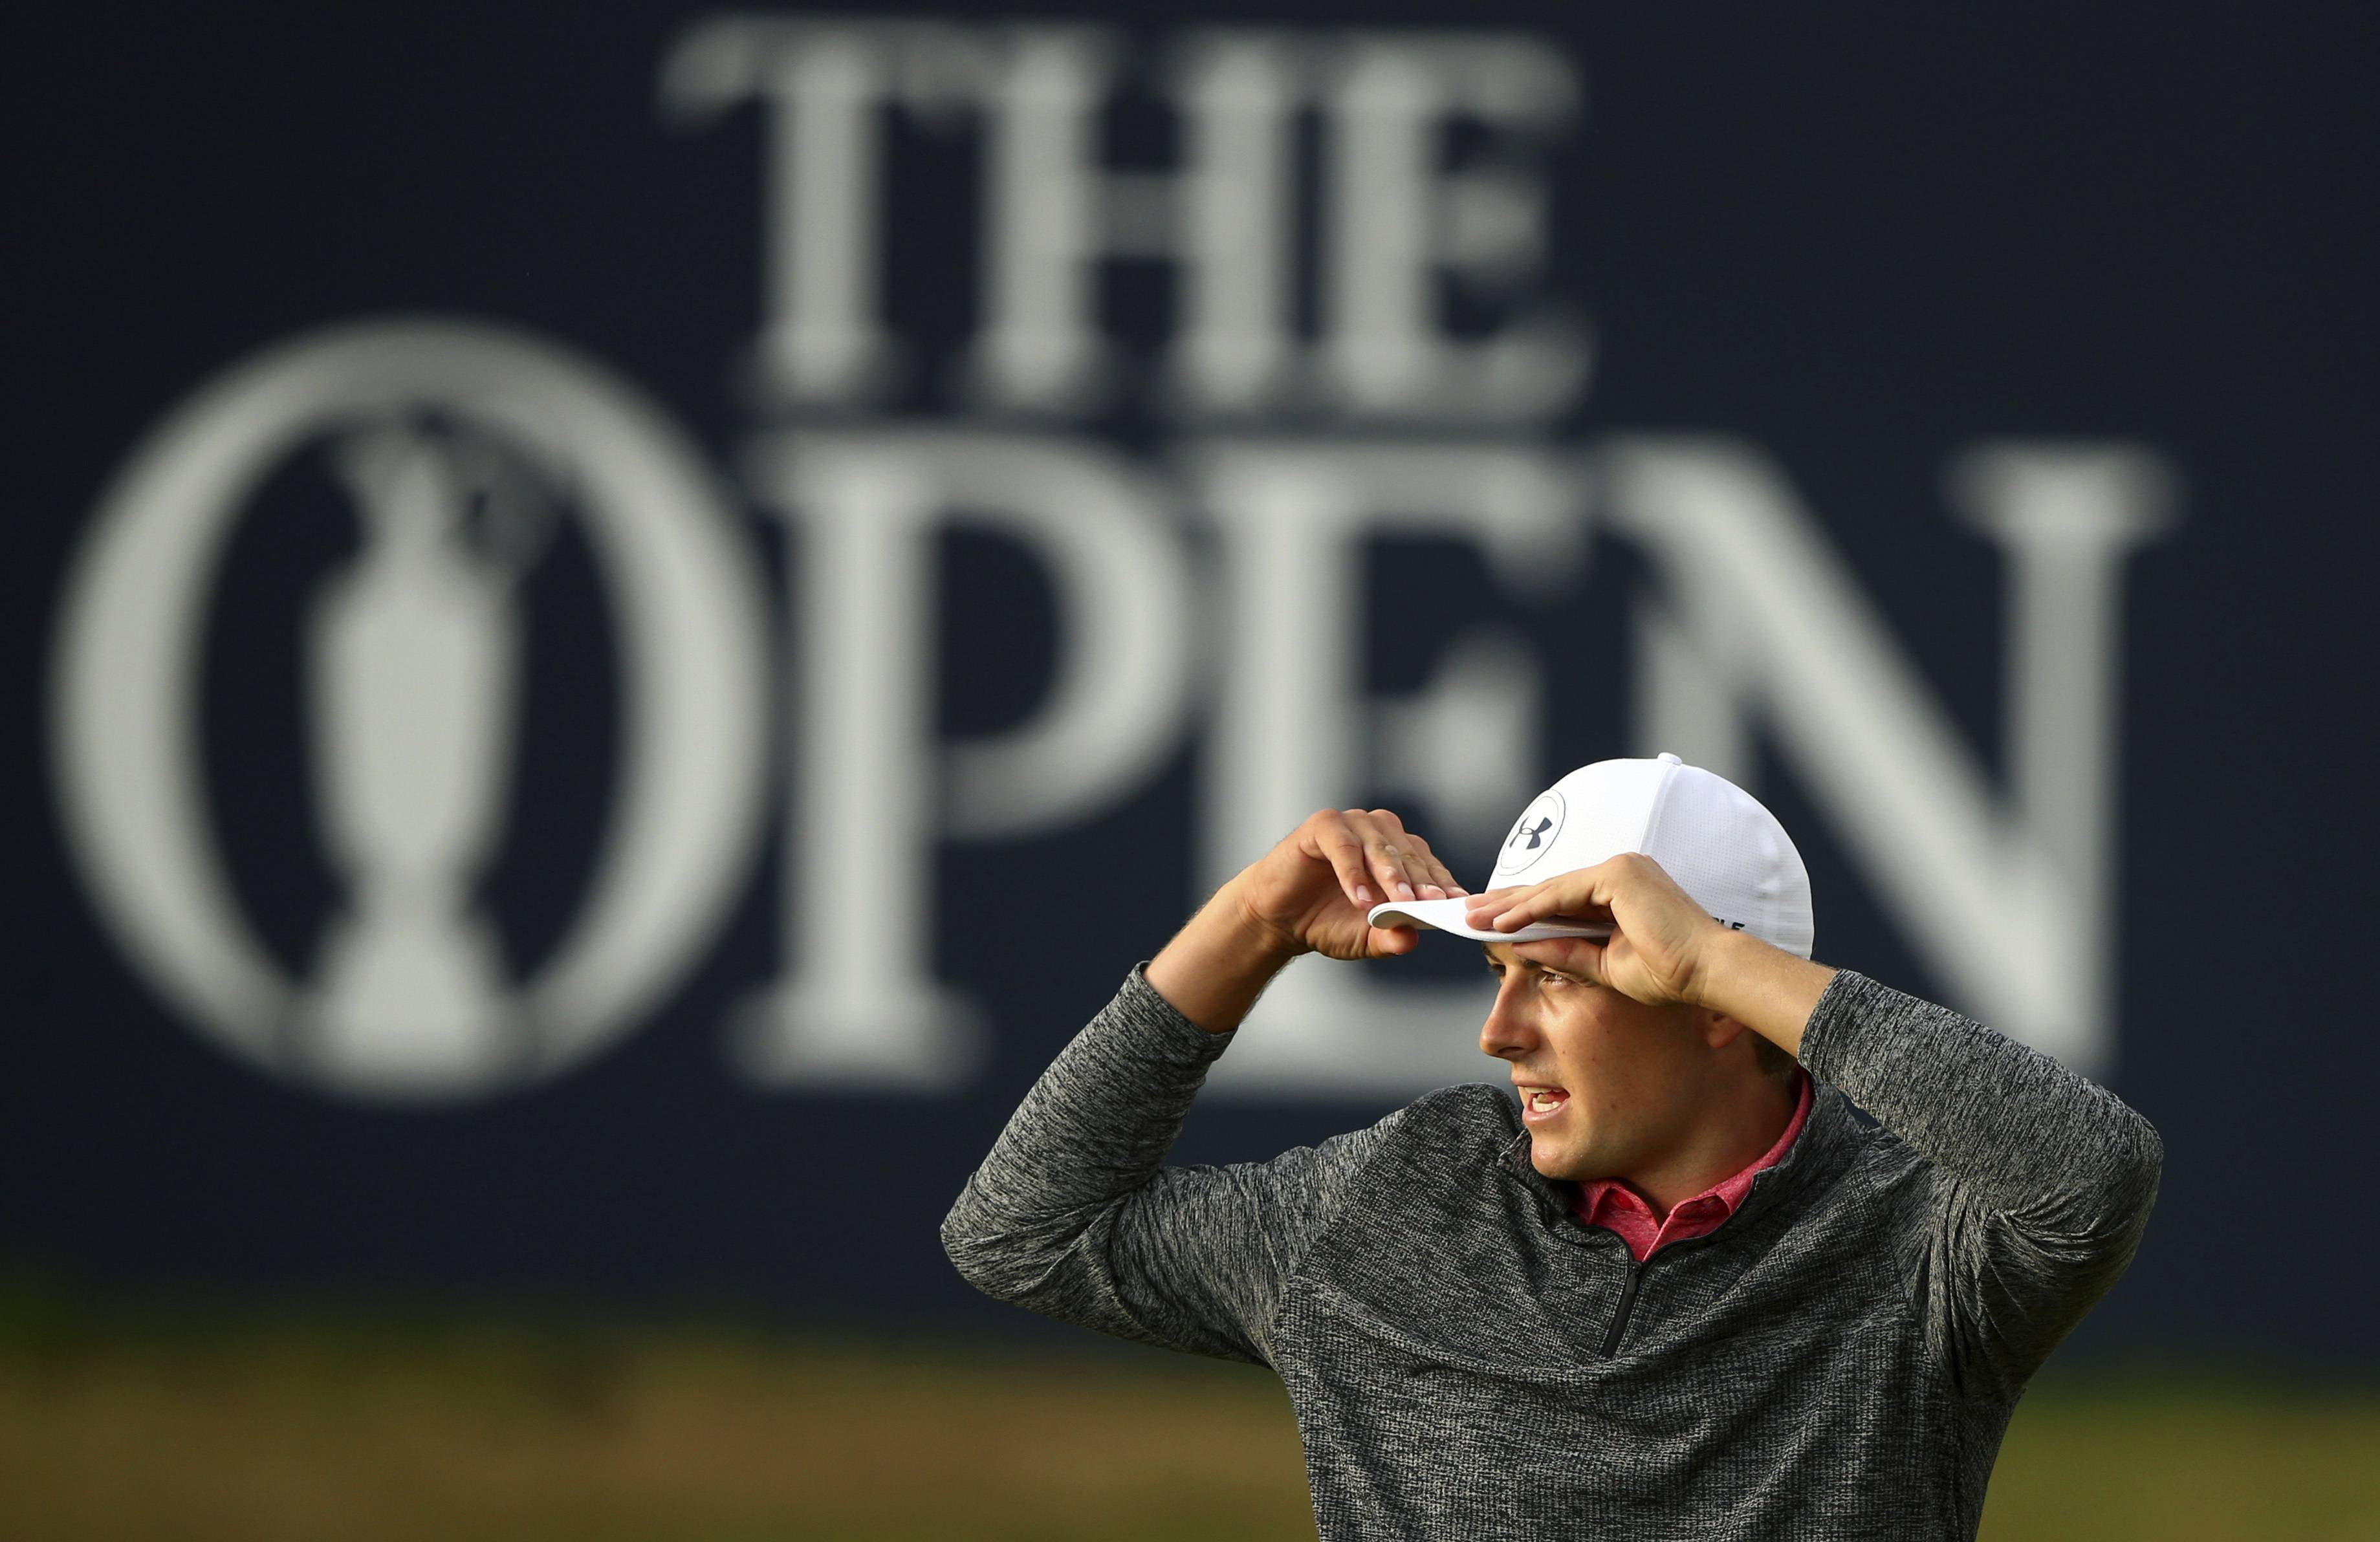 Jordan Spieth of the United States on the 18th green after the third round of the British Open Golf Championship, at Royal Birkdale, Southport, England, Saturday July 22, 2017. (AP Photo/Dave Thompson)